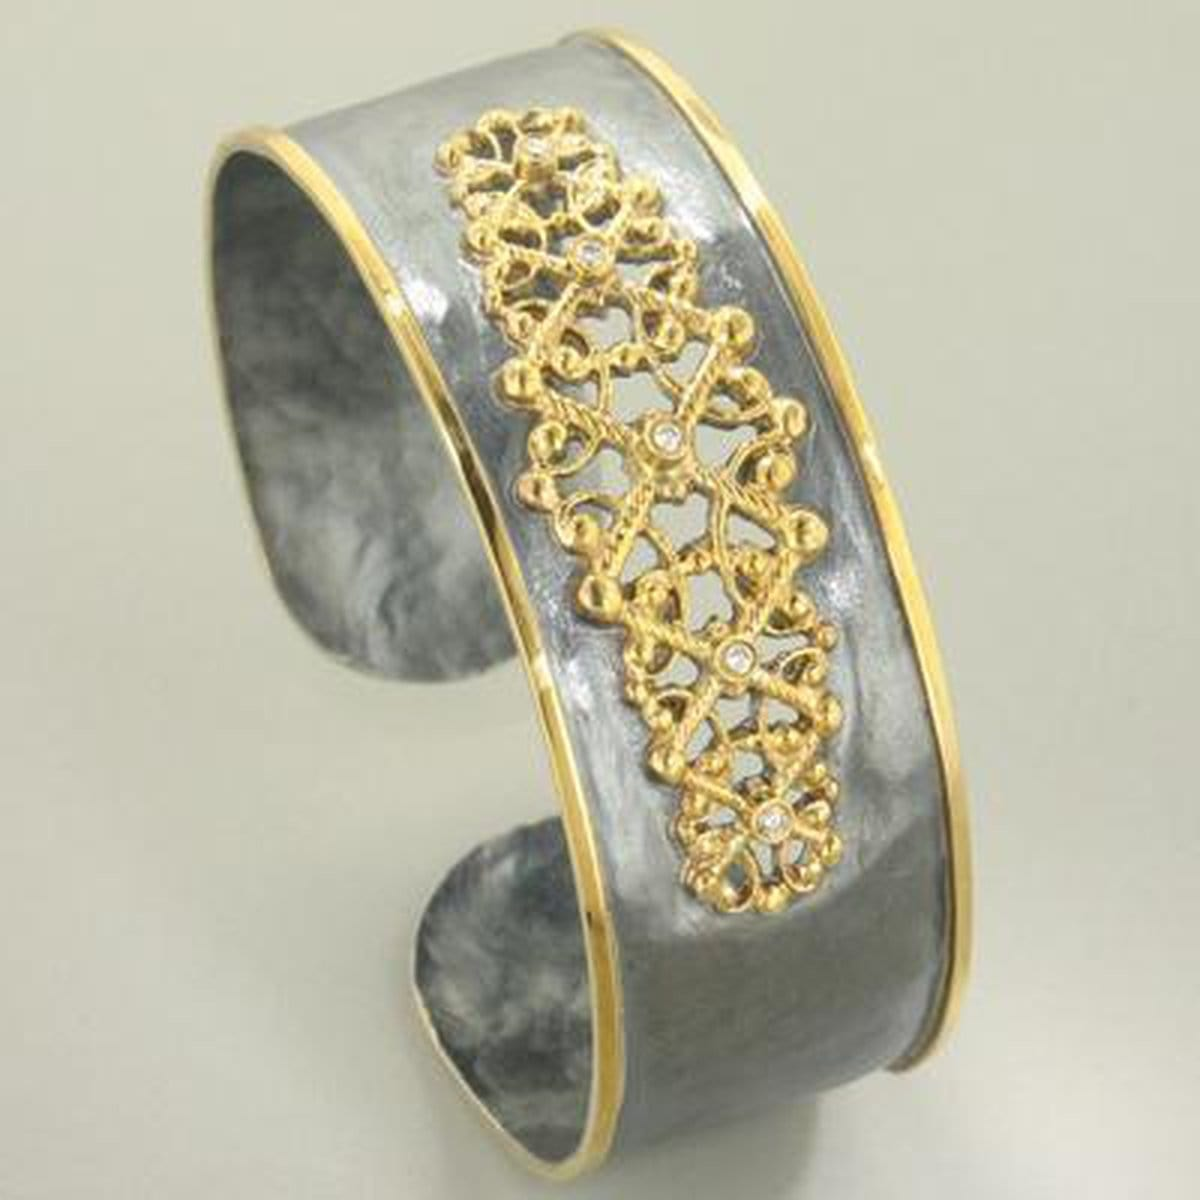 Marika Diamond, Sterling Silver & 18k Gold Cuff - MS18135-Marika-Renee Taylor Gallery